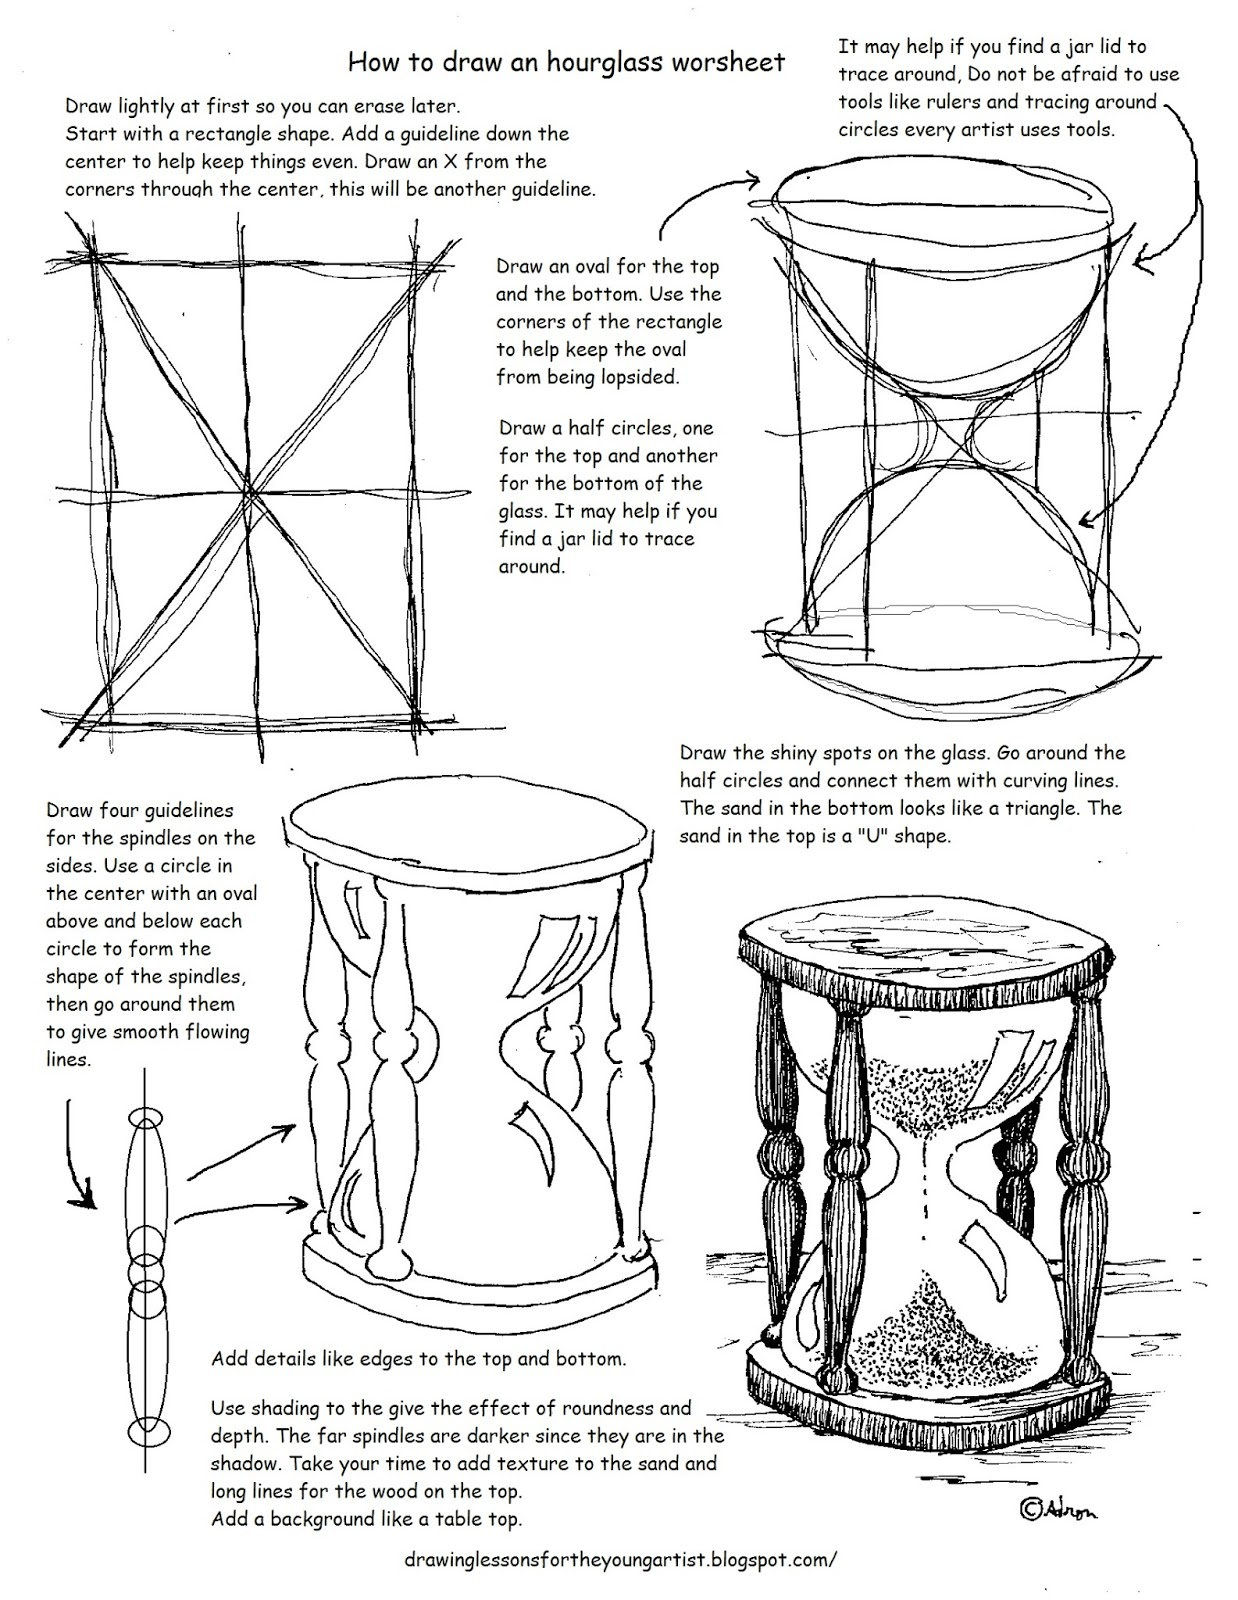 worksheet Draw The Other Half Of The Picture Worksheet how to draw worksheets for the young artist printable an hourglass worksheet